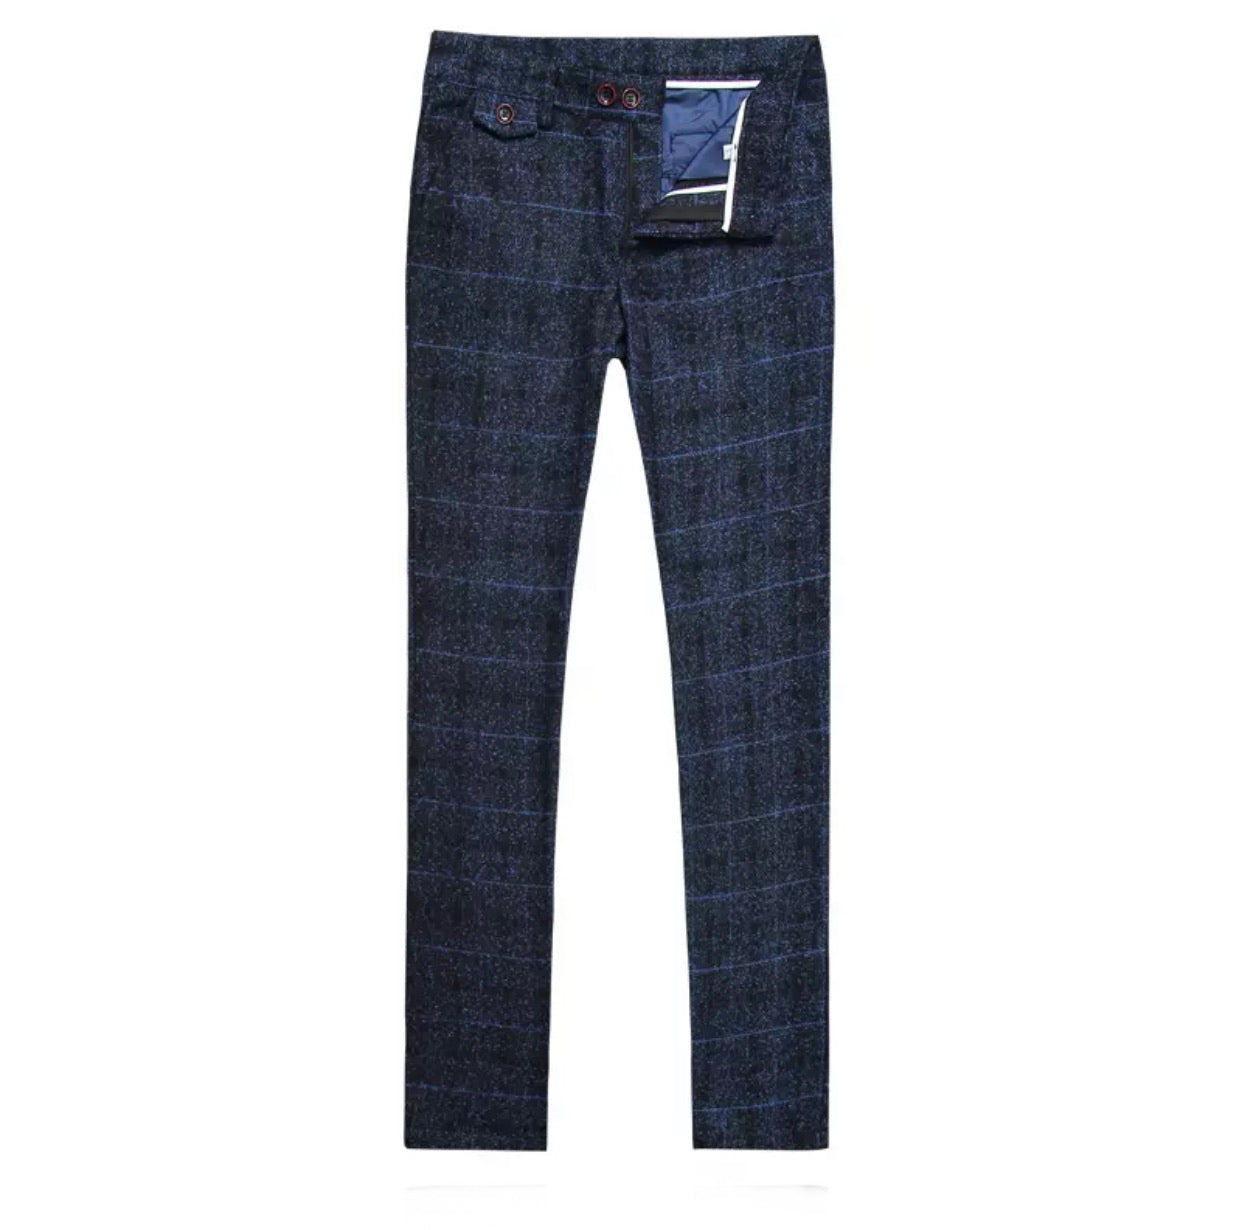 The Plaid Trouser - Up to Size 40